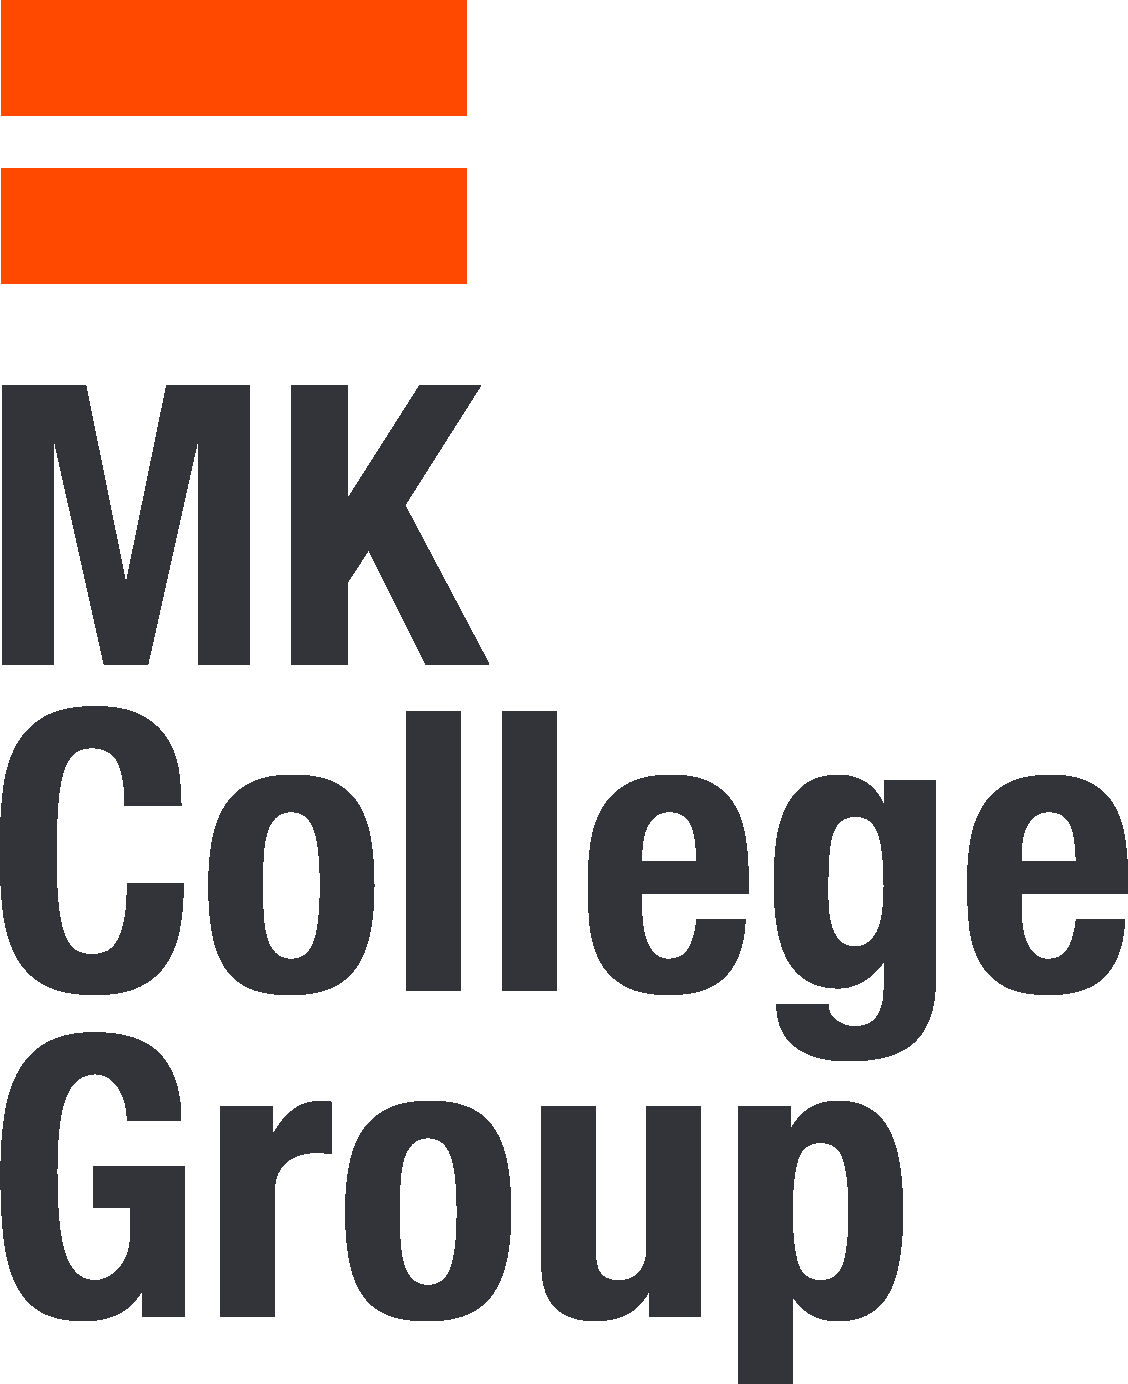 MK College Group 2021